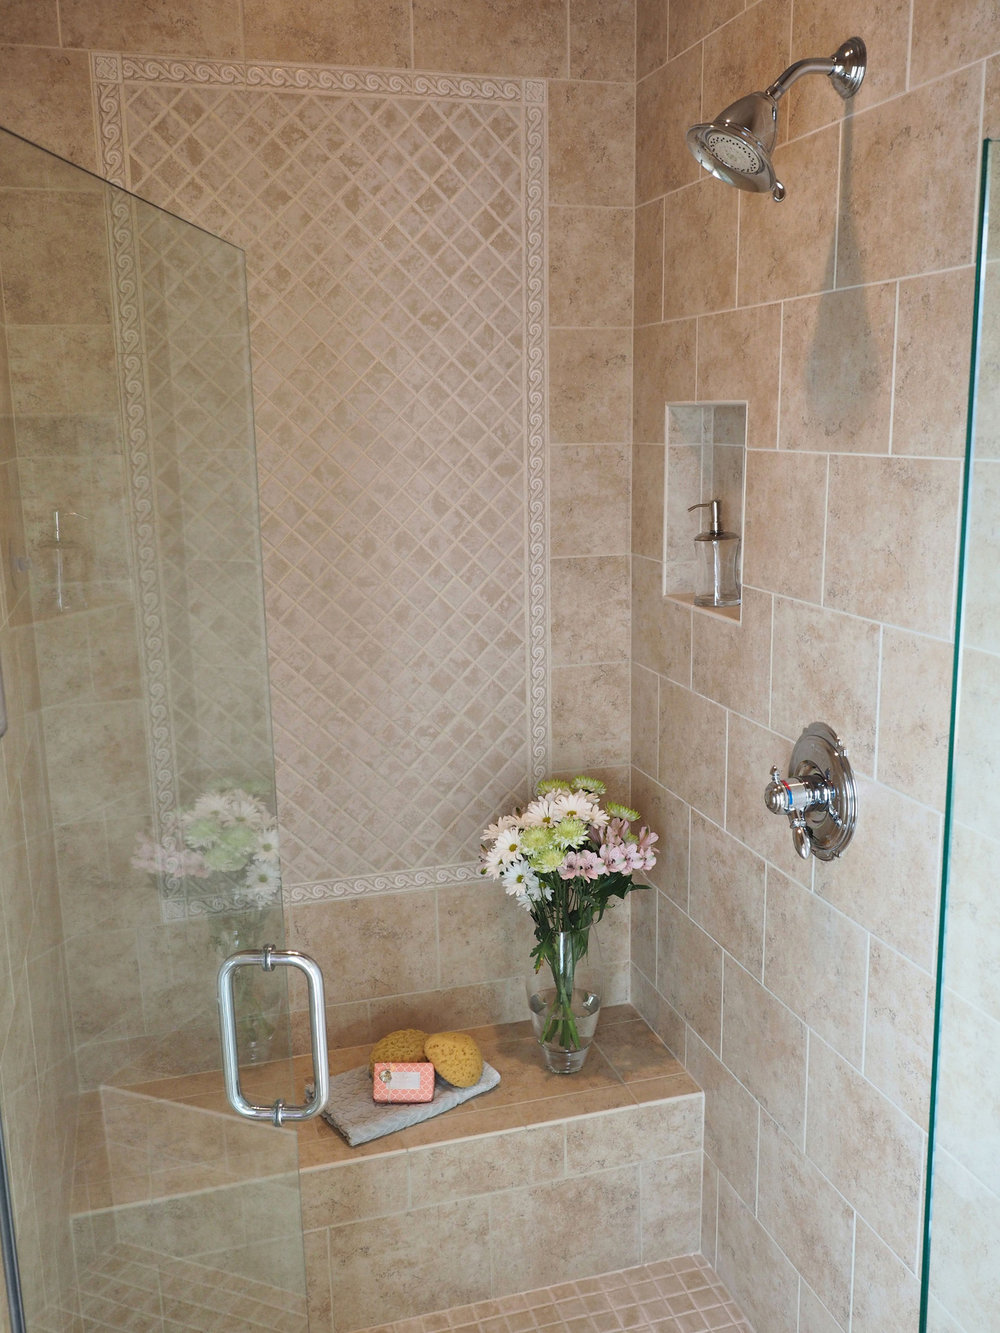 The shower featuring Dal-Tile, Brixton series and the color is sand. Inset design is same tile series but the color is bone.